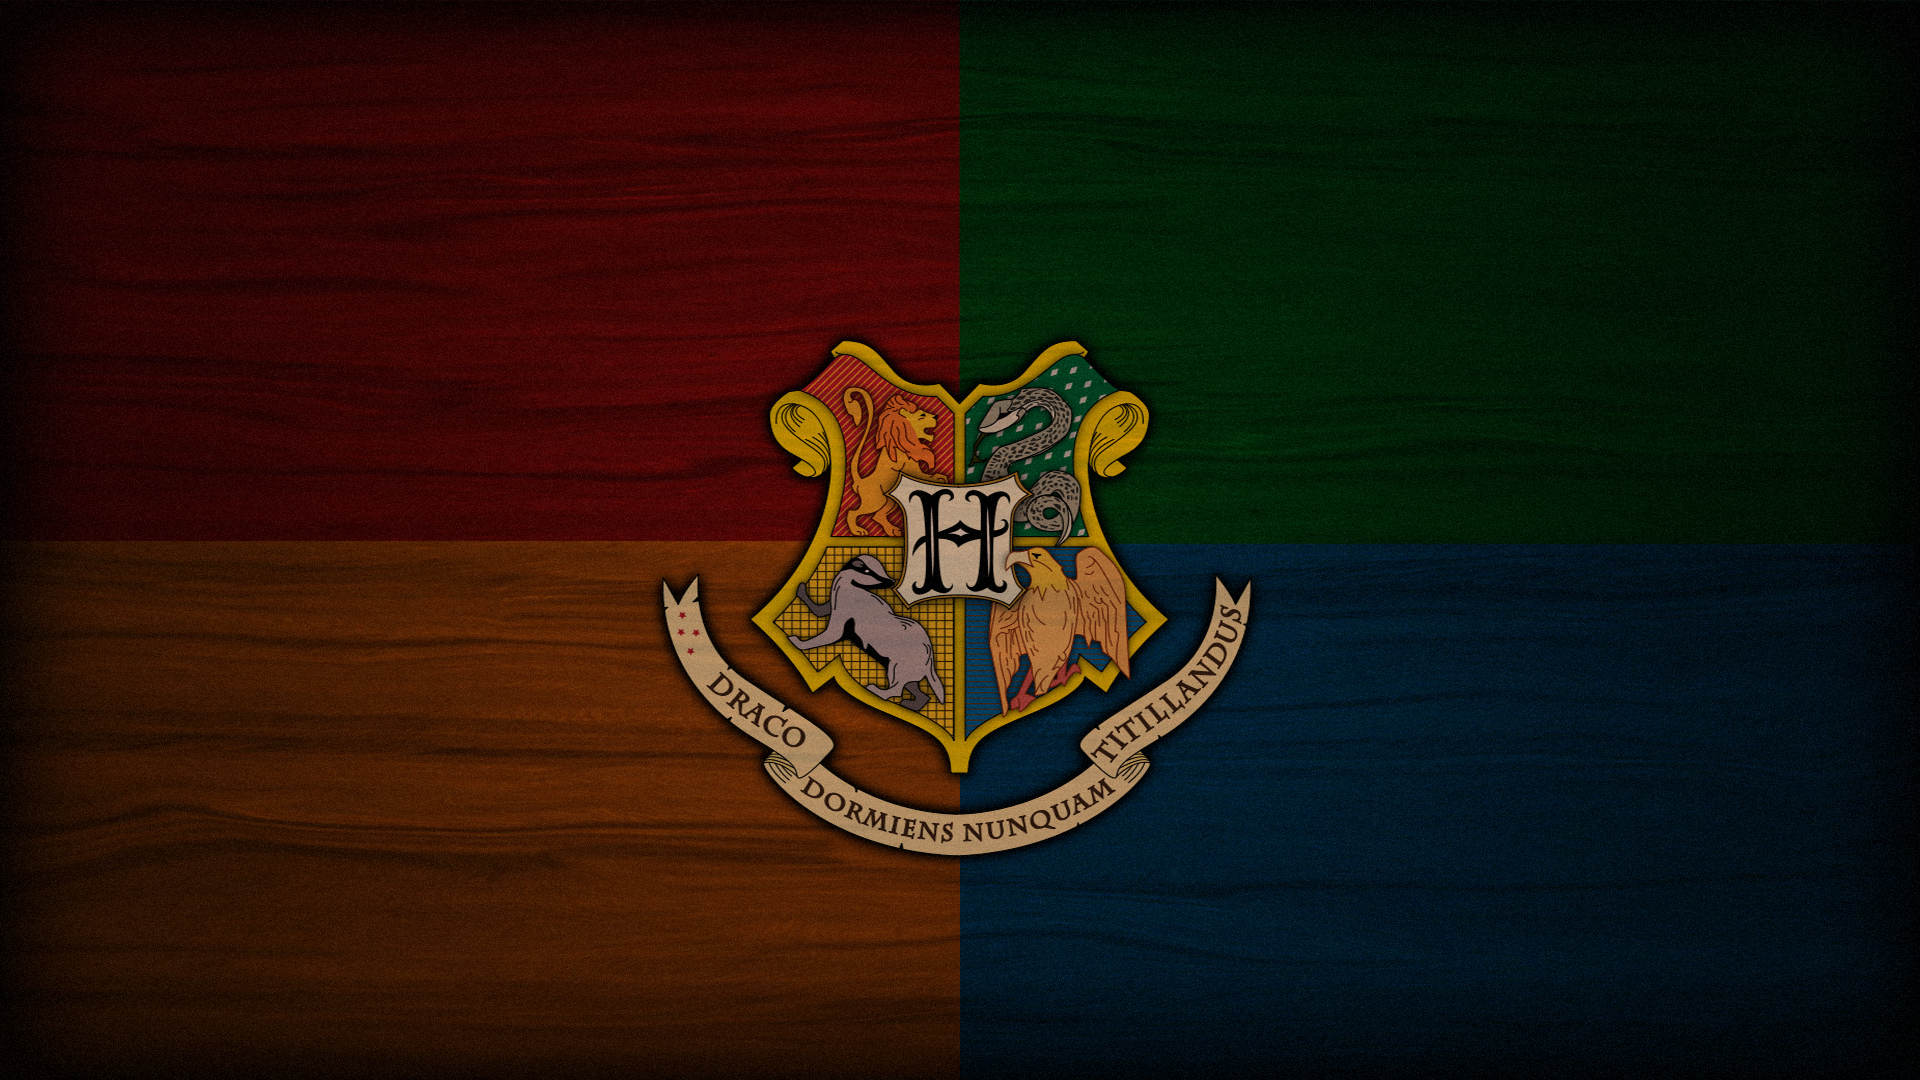 Harry Potter Hogwarts Wallpapers High Quality Resolution Harry